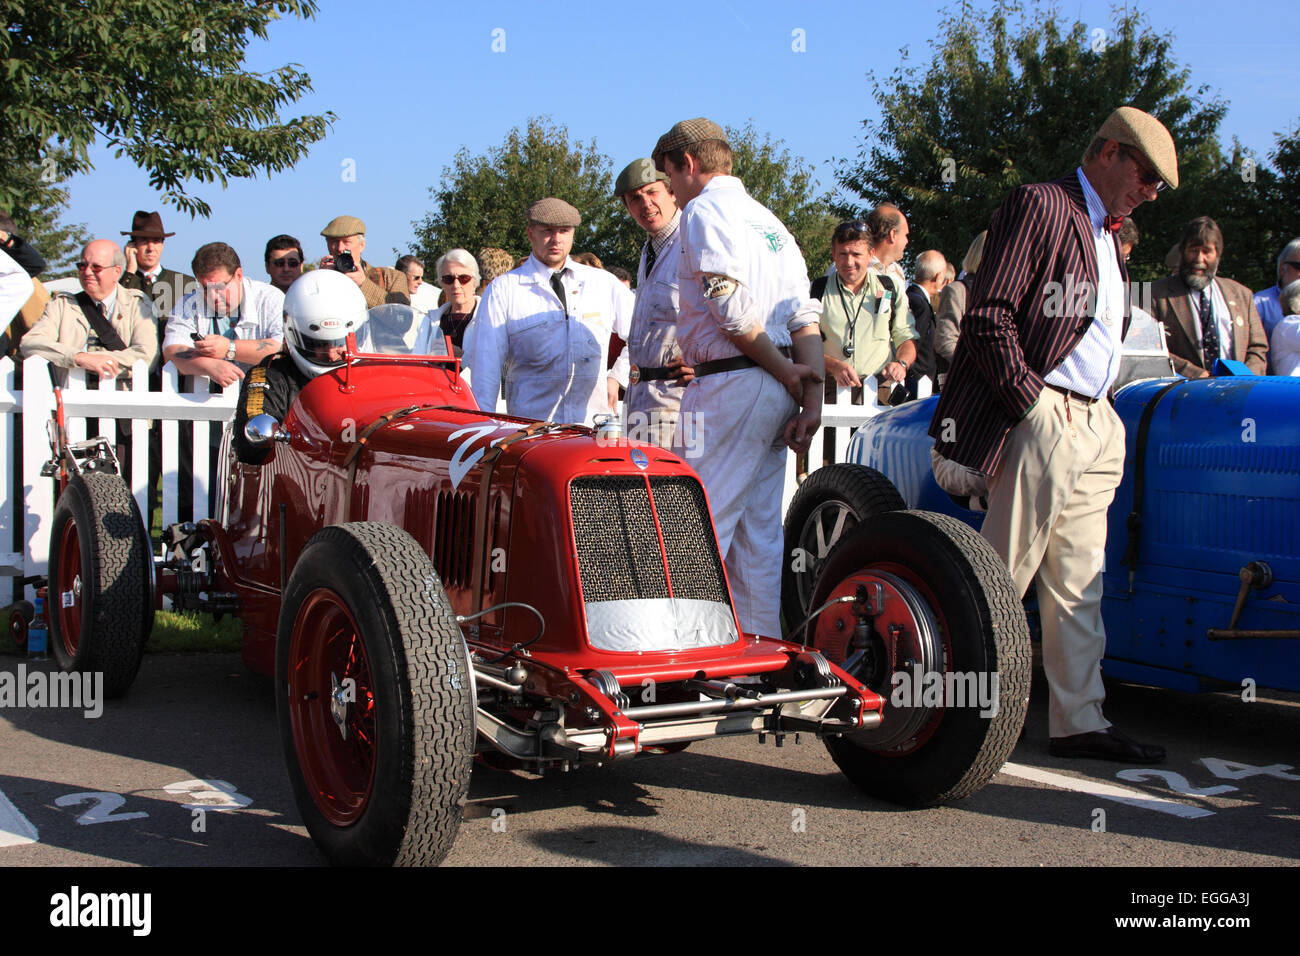 1935-Maserati 4CM im Montagebereich / Goodwood Revival / Goodwood / UK Stockbild